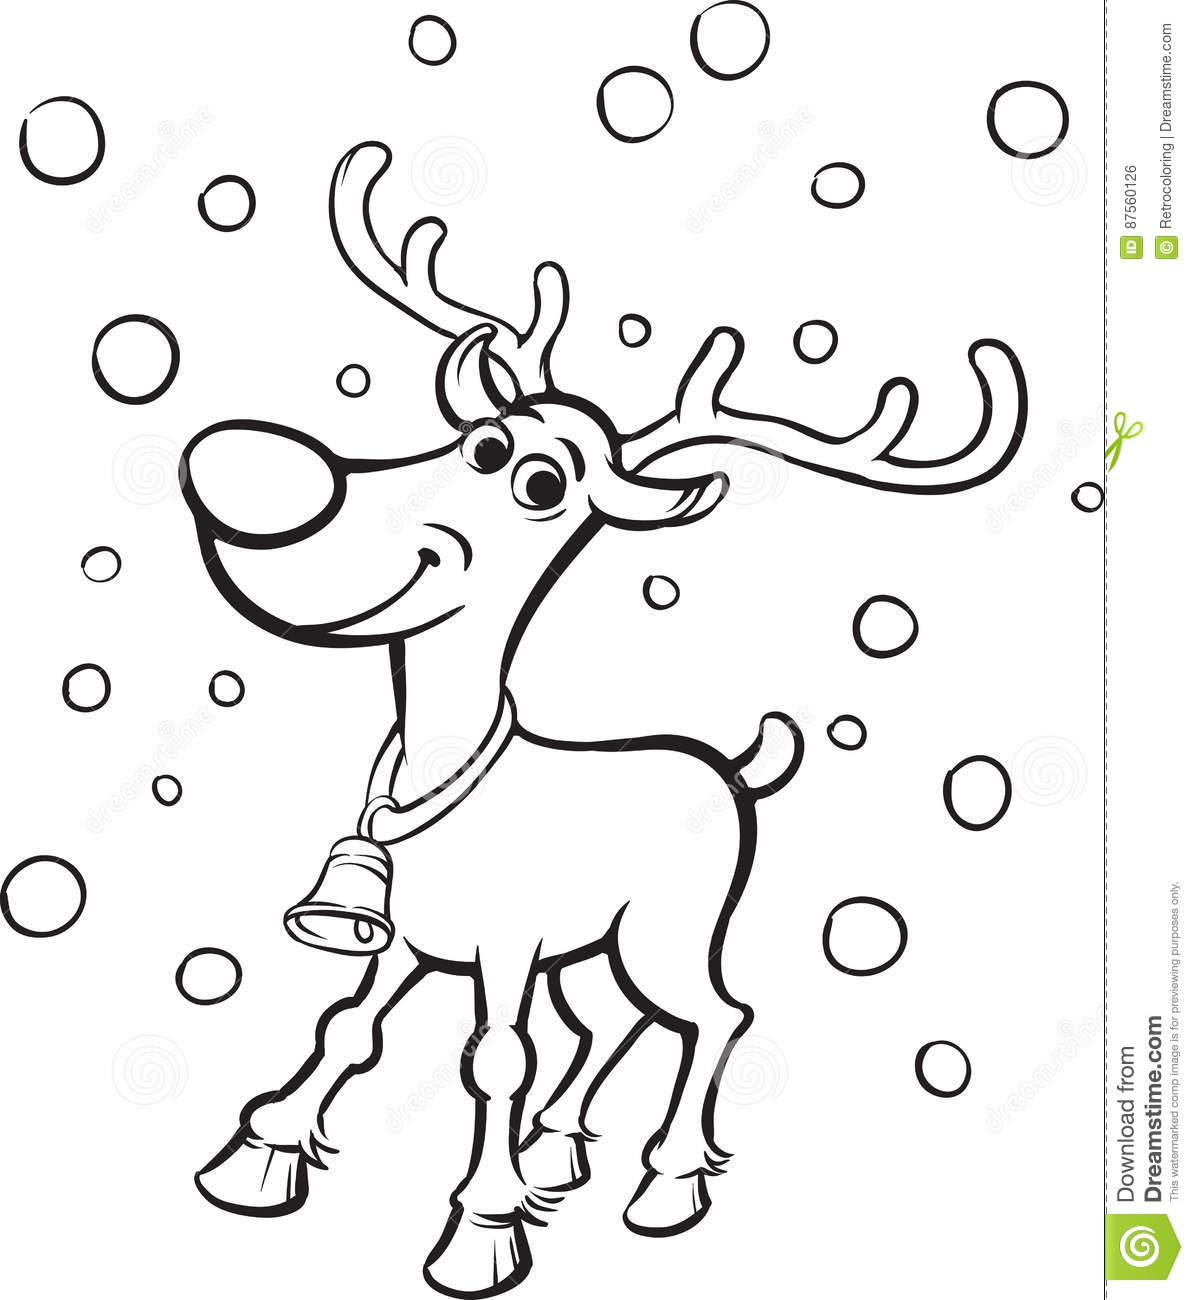 Coloring Book Rudolph The Red Nosed Reindeer Stock Vector Illustration Of Nosed Nose 87560126